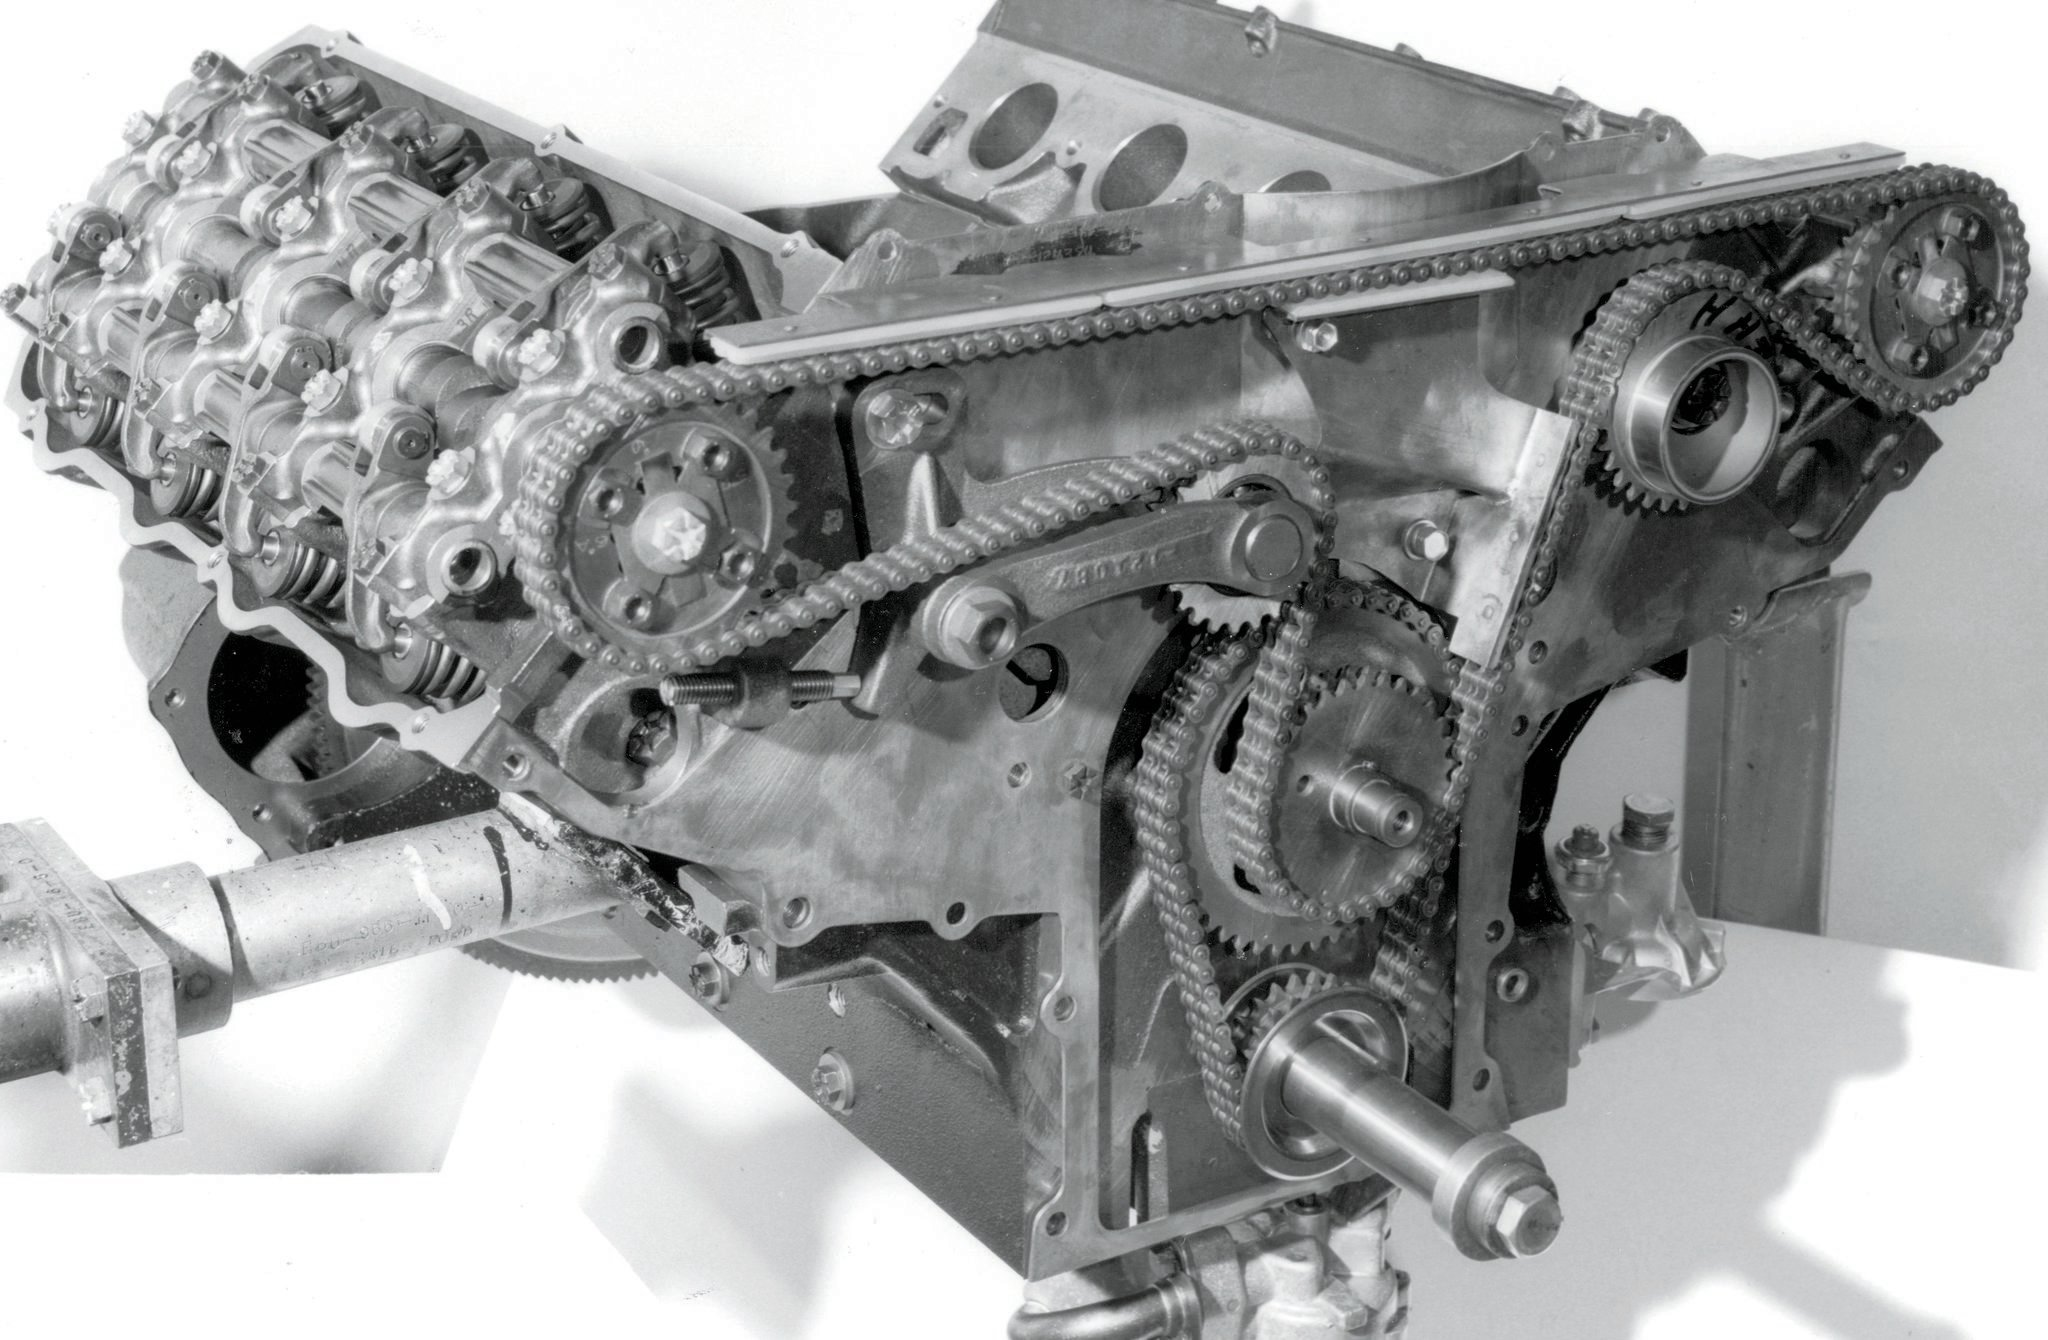 """Ford's SOHC was based on the FE engine family and featured a single camshaft atop each large-port, hemispherical combustion chamber cylinder head. Cams were driven by double-row chains, which were fine for the original NASCAR application, but the pressure brought by a supercharger caused micro chain clearance """"stack-up"""" or stretching, which retarded cam timing and promised blower explosions and fires."""